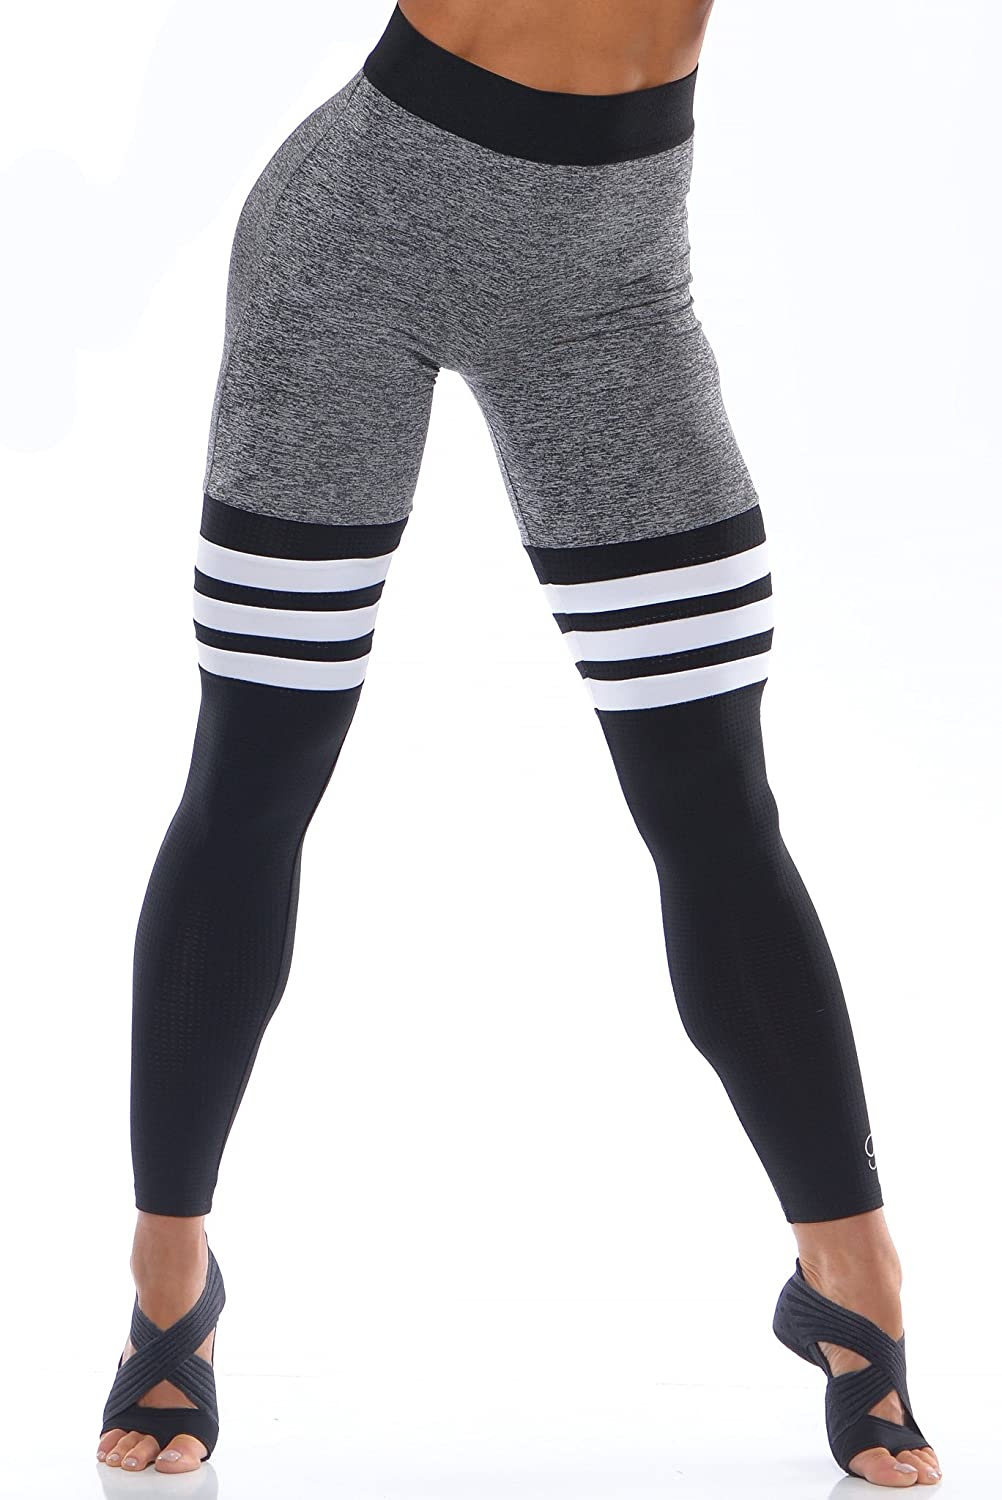 biggest selection new list shopping Bombshell Sportswear - High-Waist Thigh-High - Grey/Black